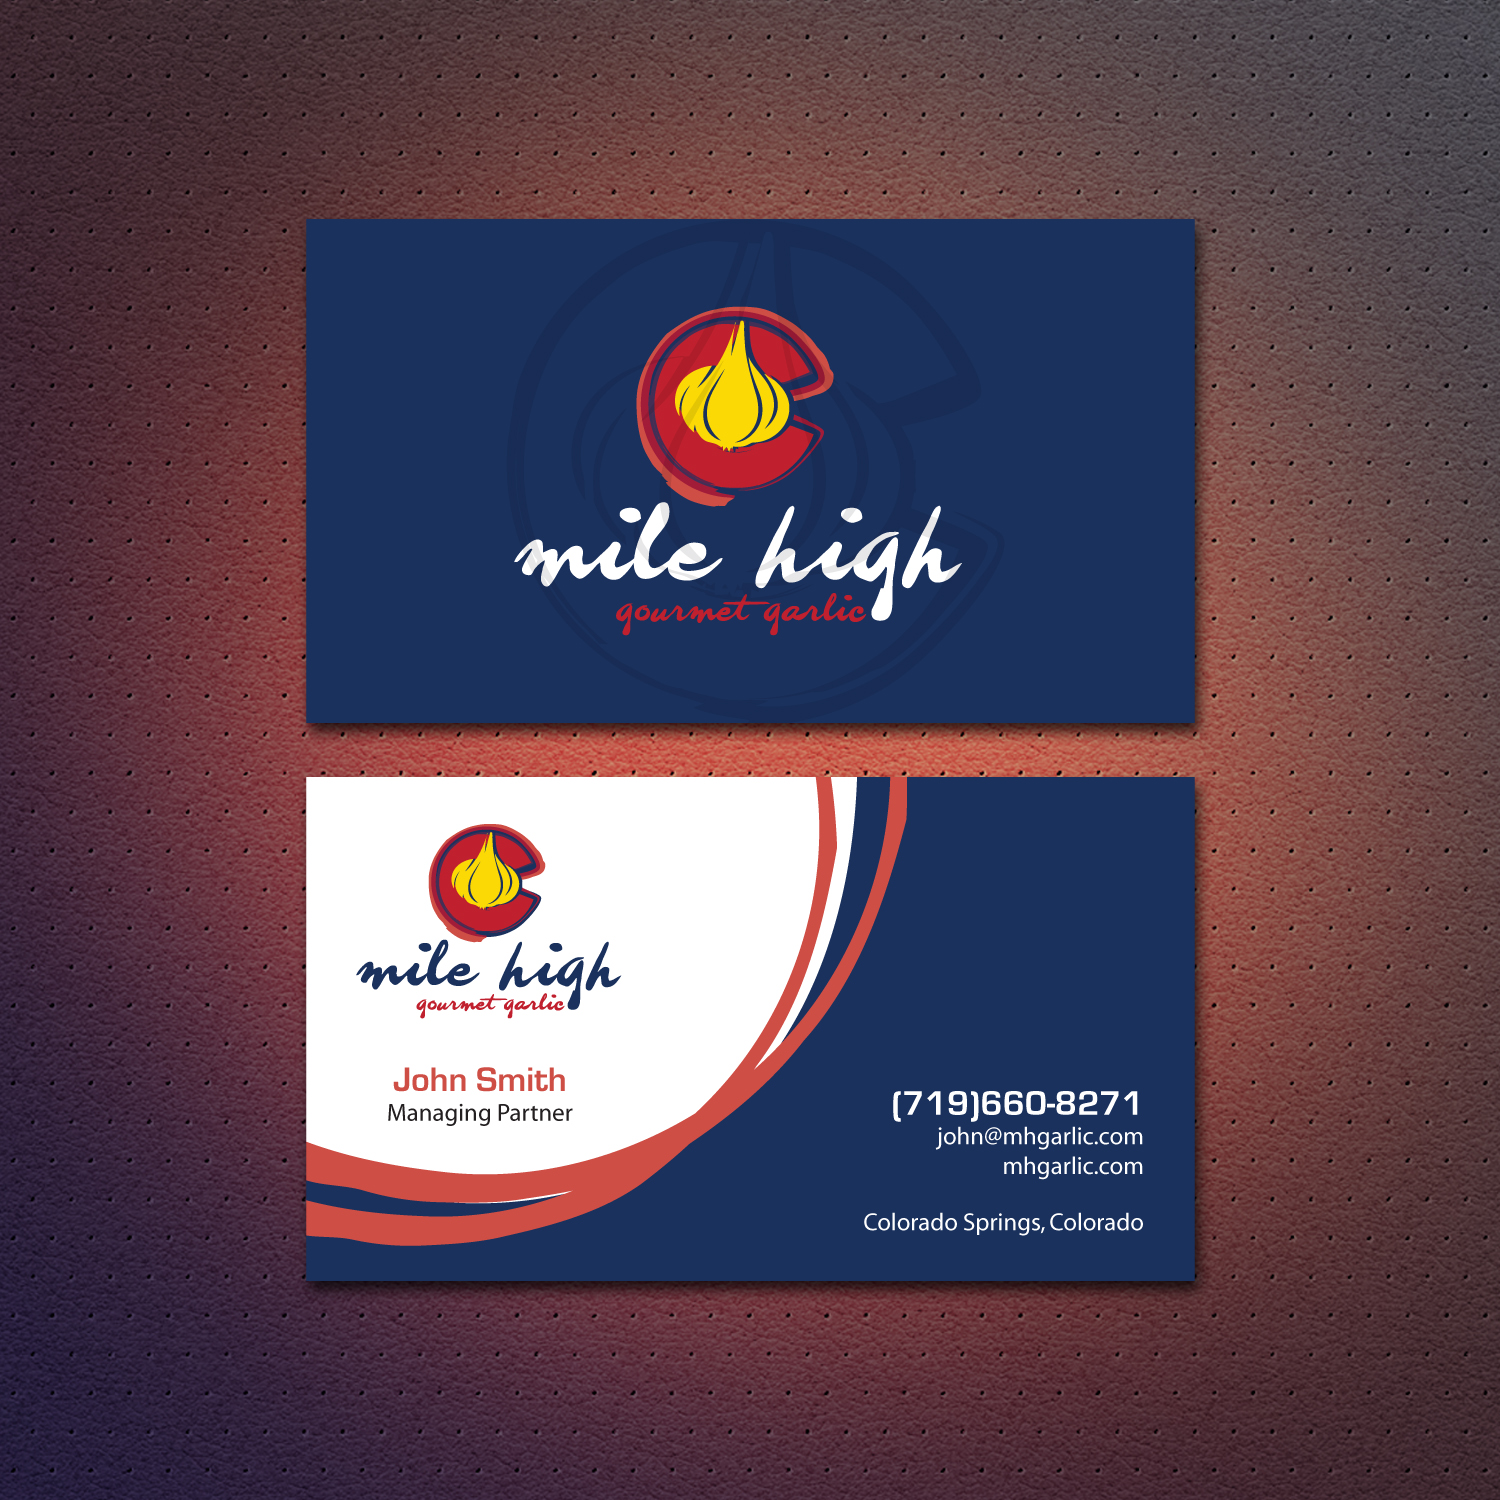 playful personable business card design for mile high gourmet